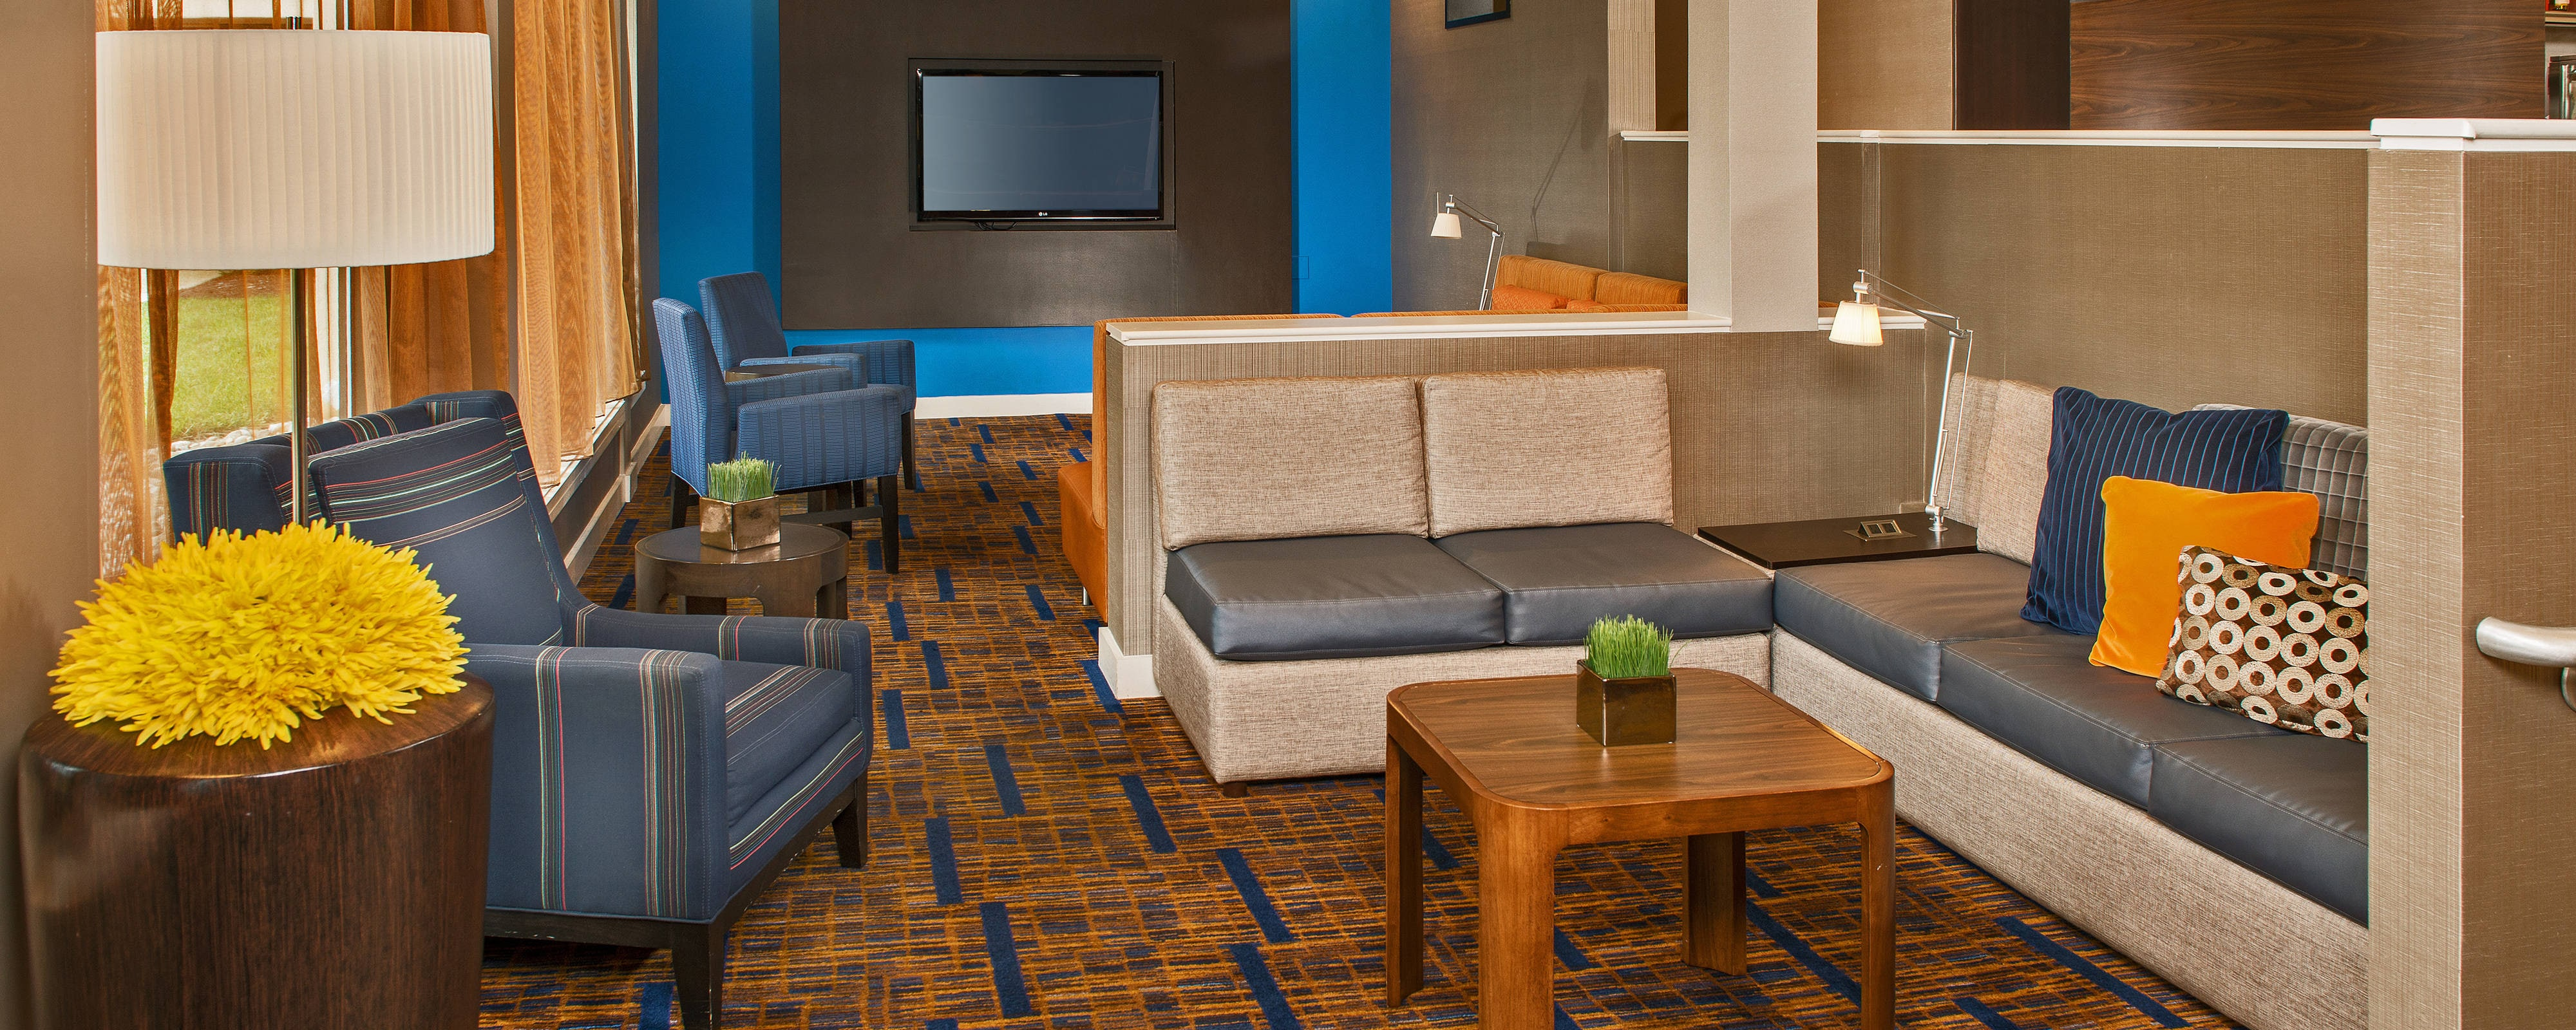 Annapolis Hotels near Naval Academy in Maryland | Courtyard Annapolis